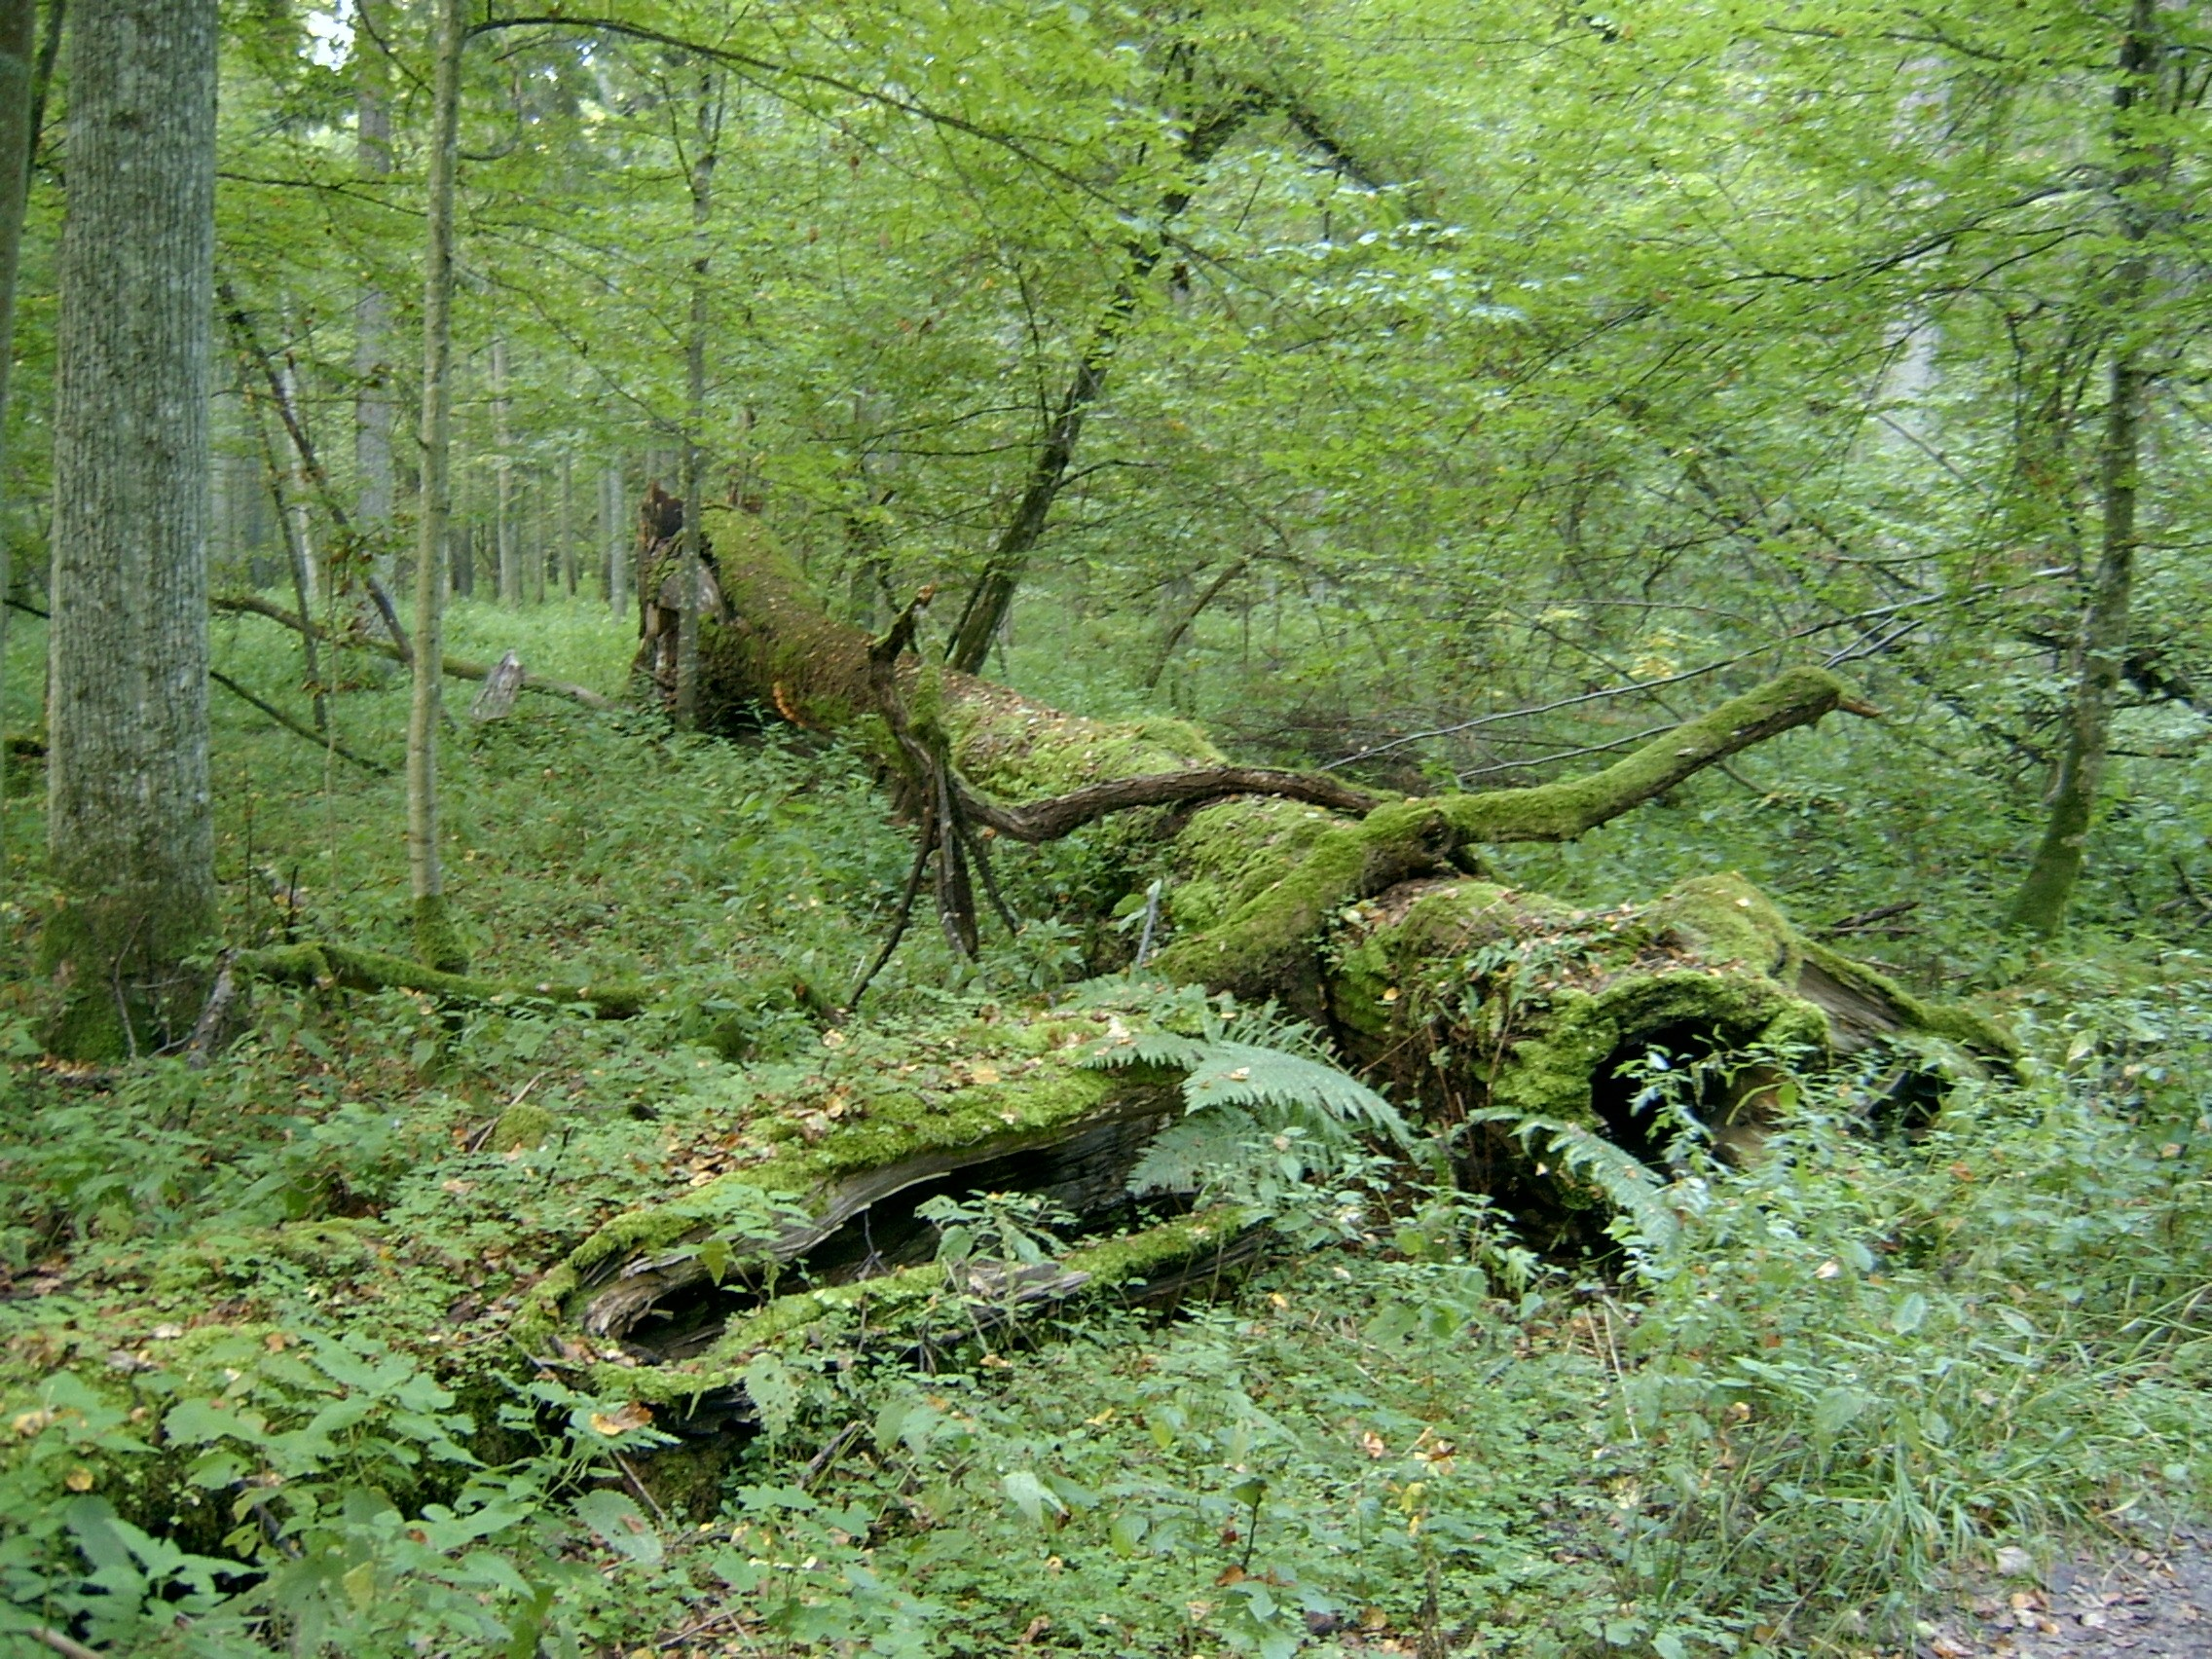 The forest food web starts here – Image Credit:  Ralf Lotys/WikimediaCommons